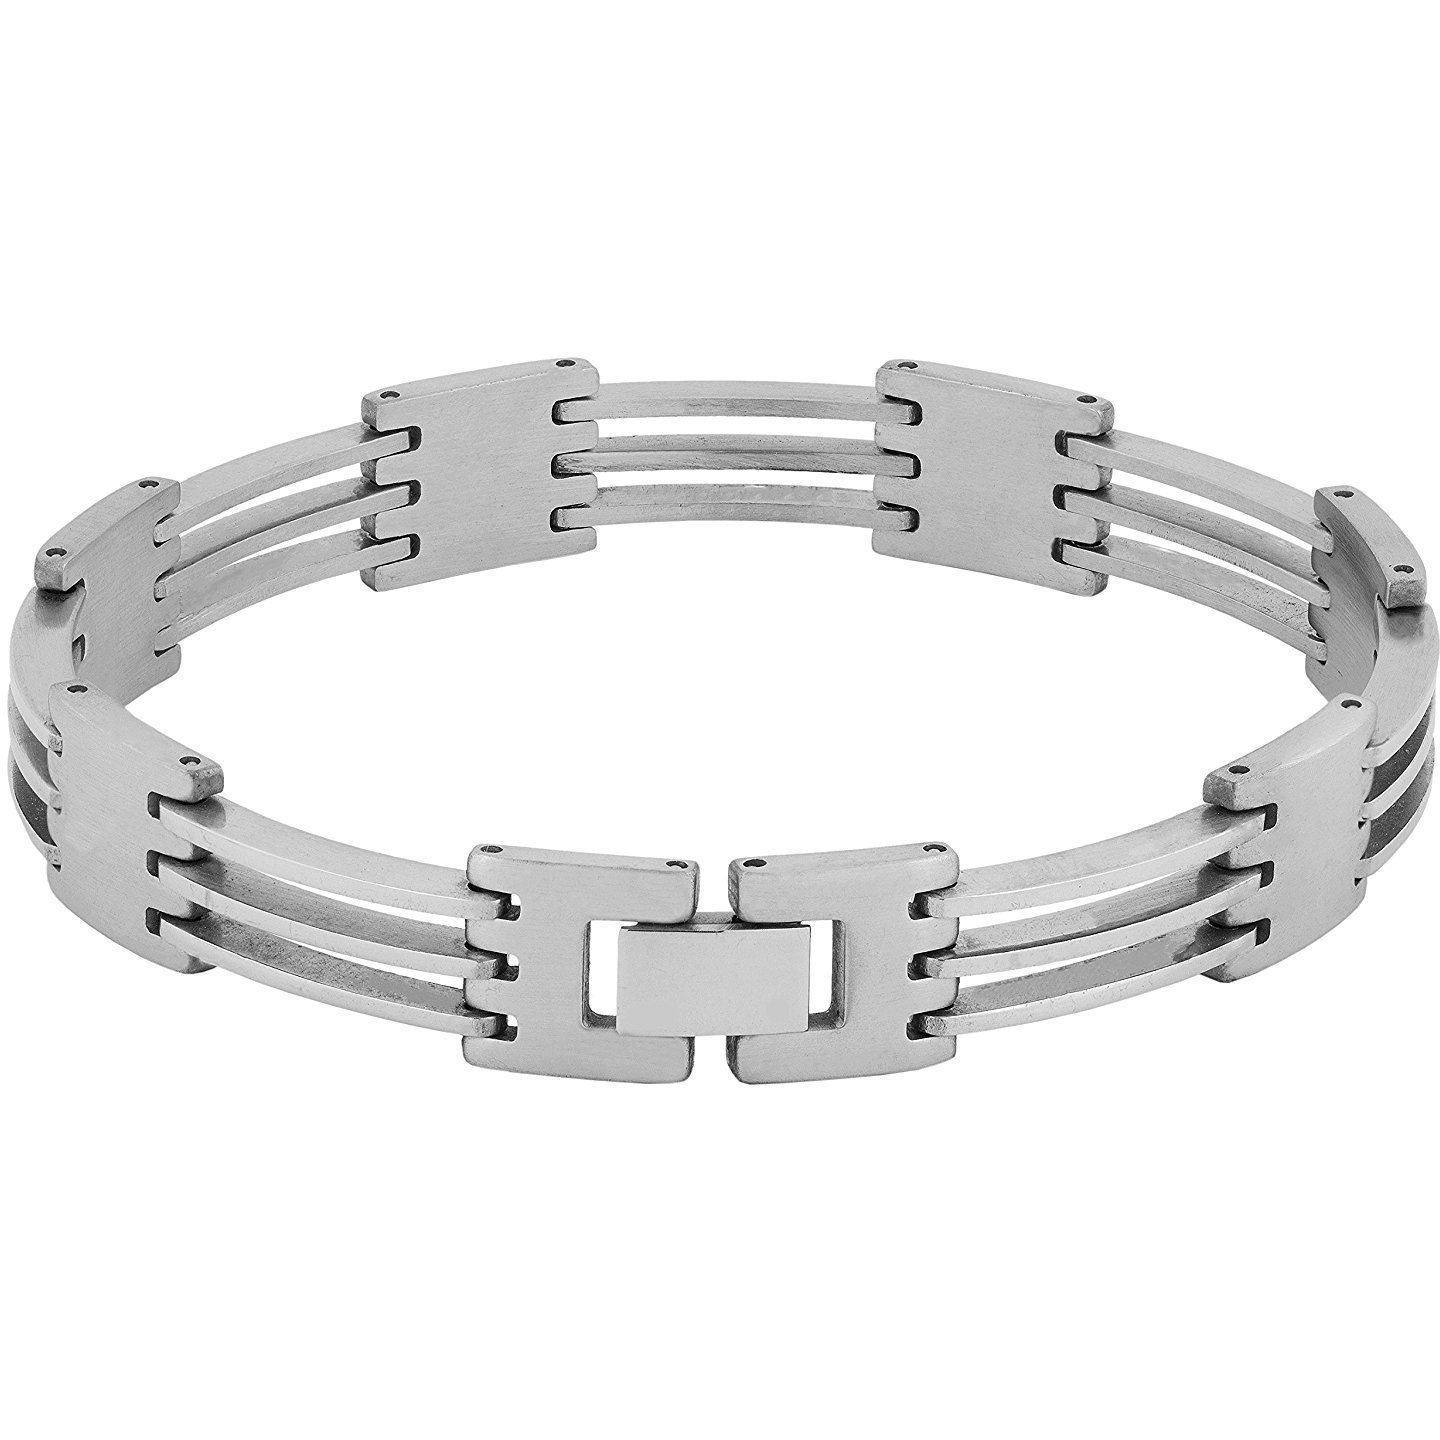 Zivom Geometric Glossy Matte Links Daily 316L Surgical Stainless Steel Bracelet For Boys Men